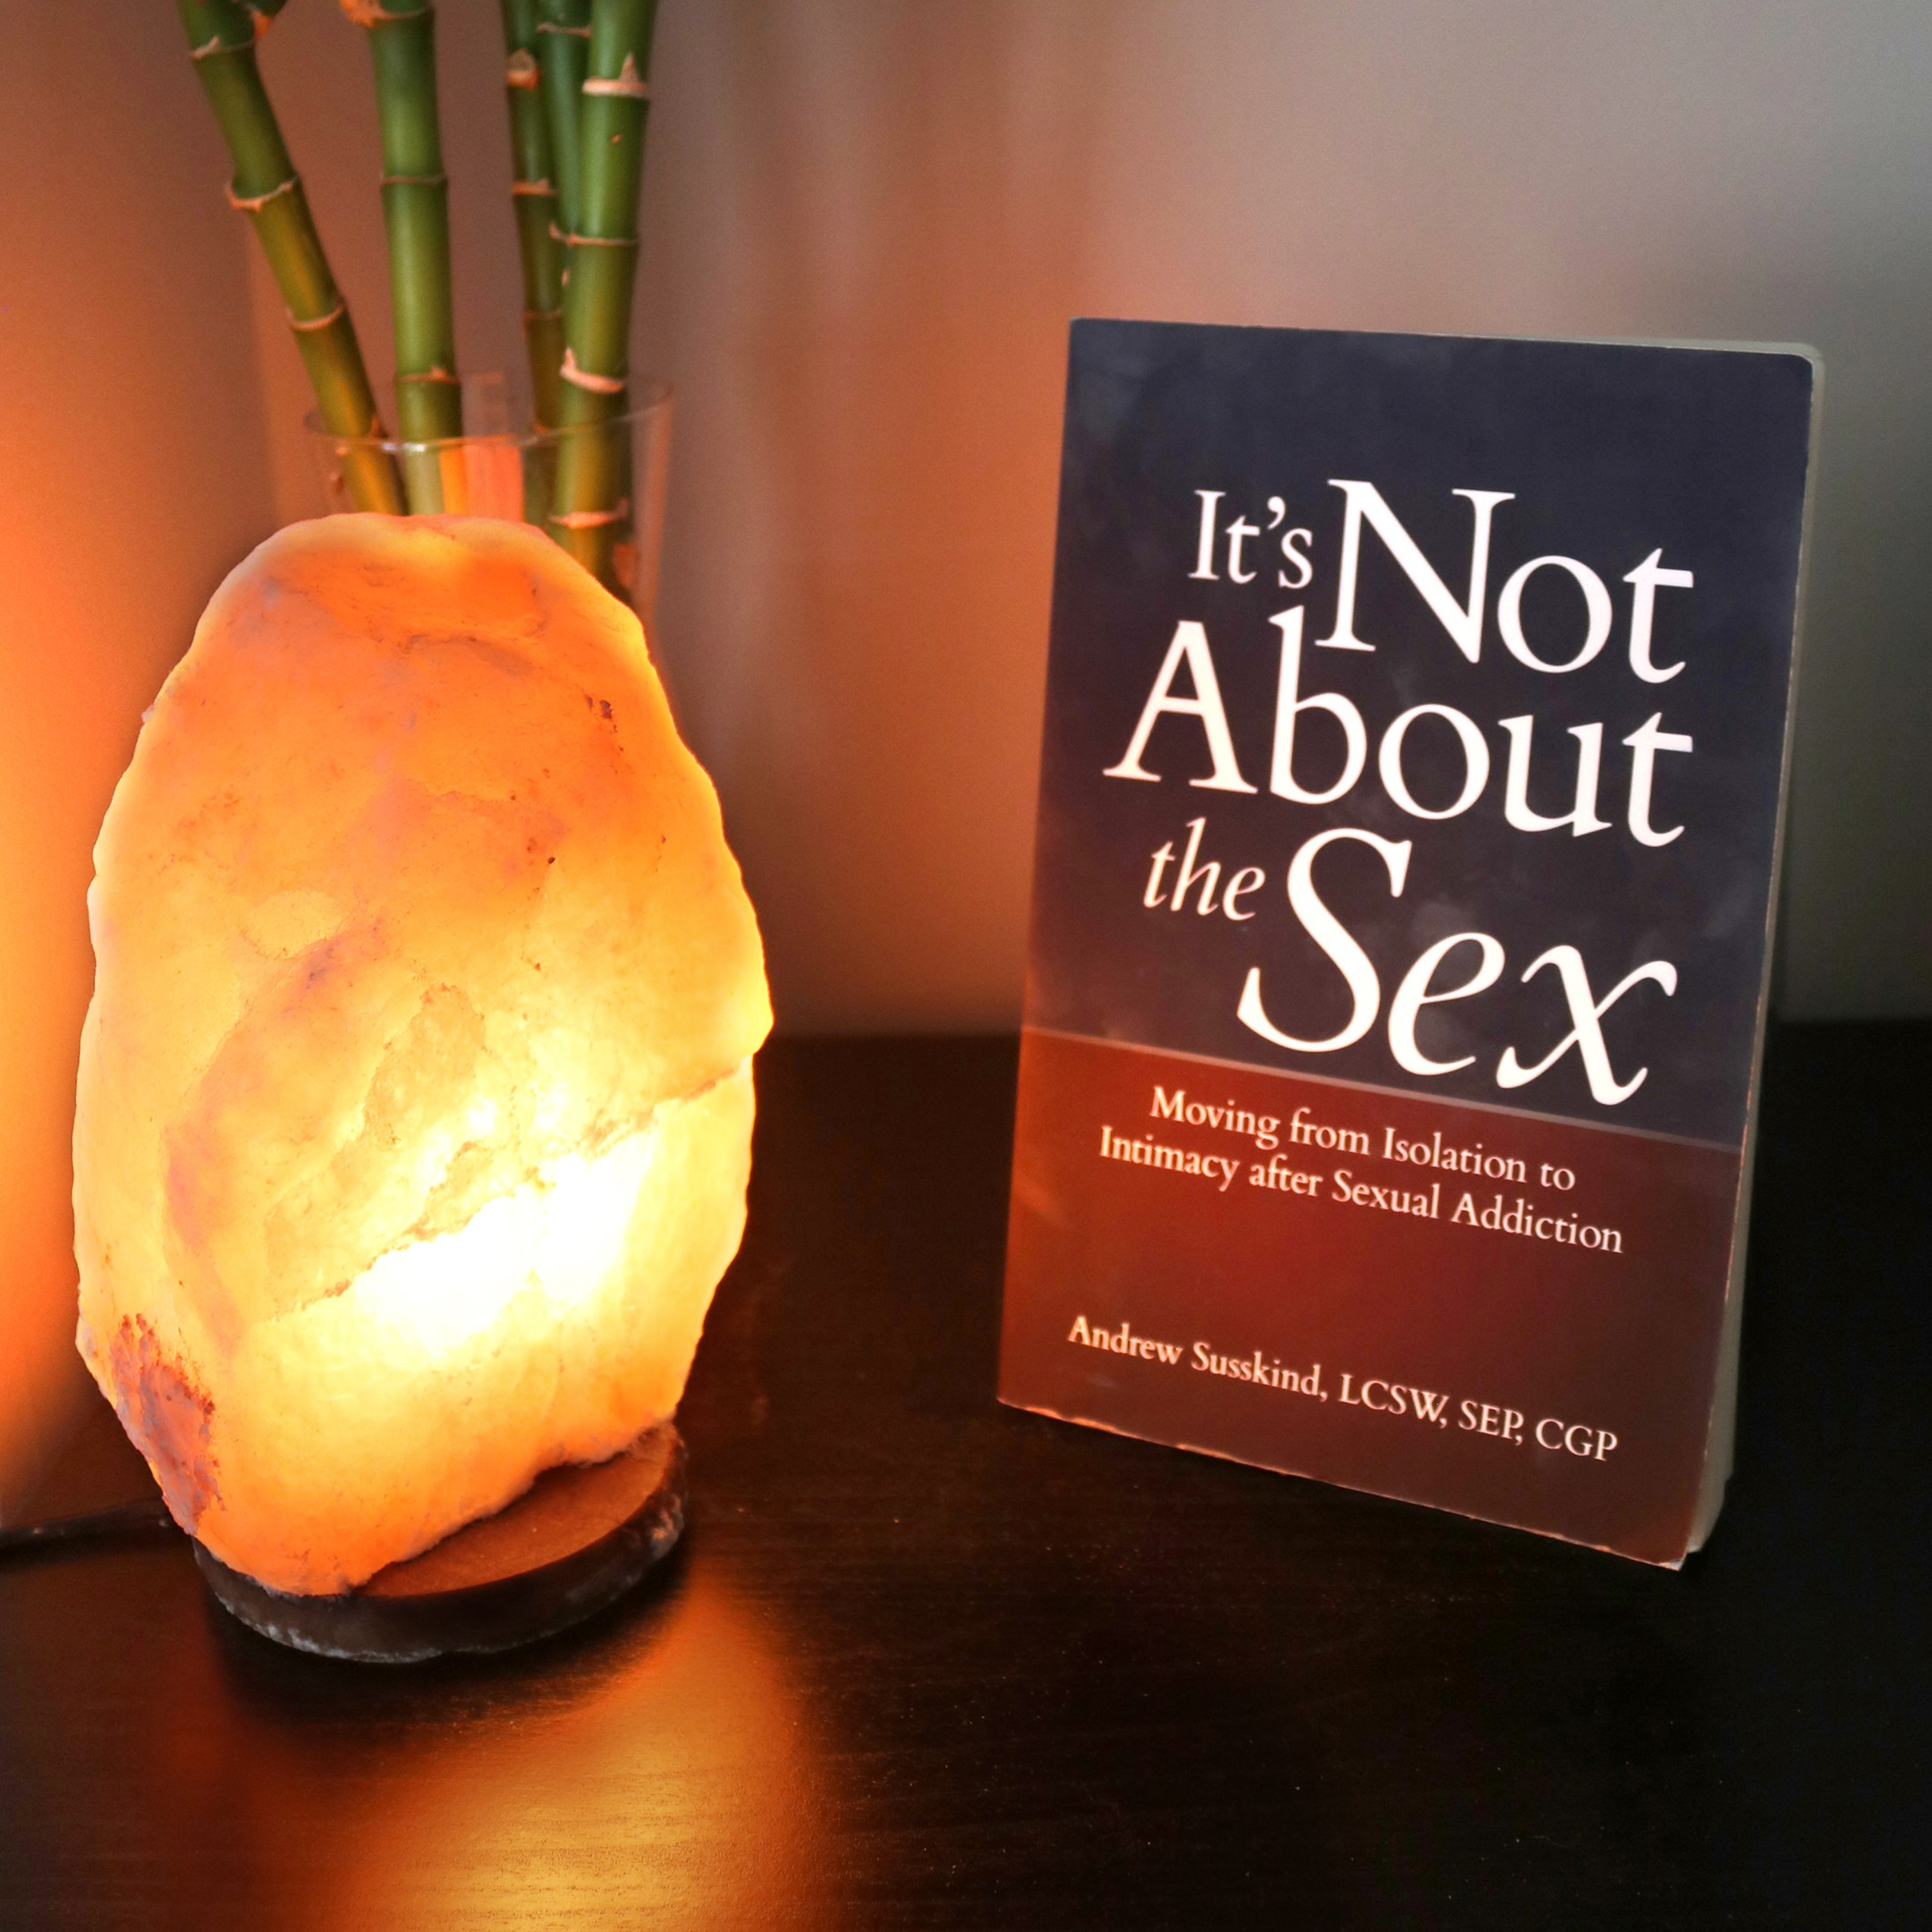 Moving from Isolation to Intimacy after Sexual Addiction Its Not About the Sex